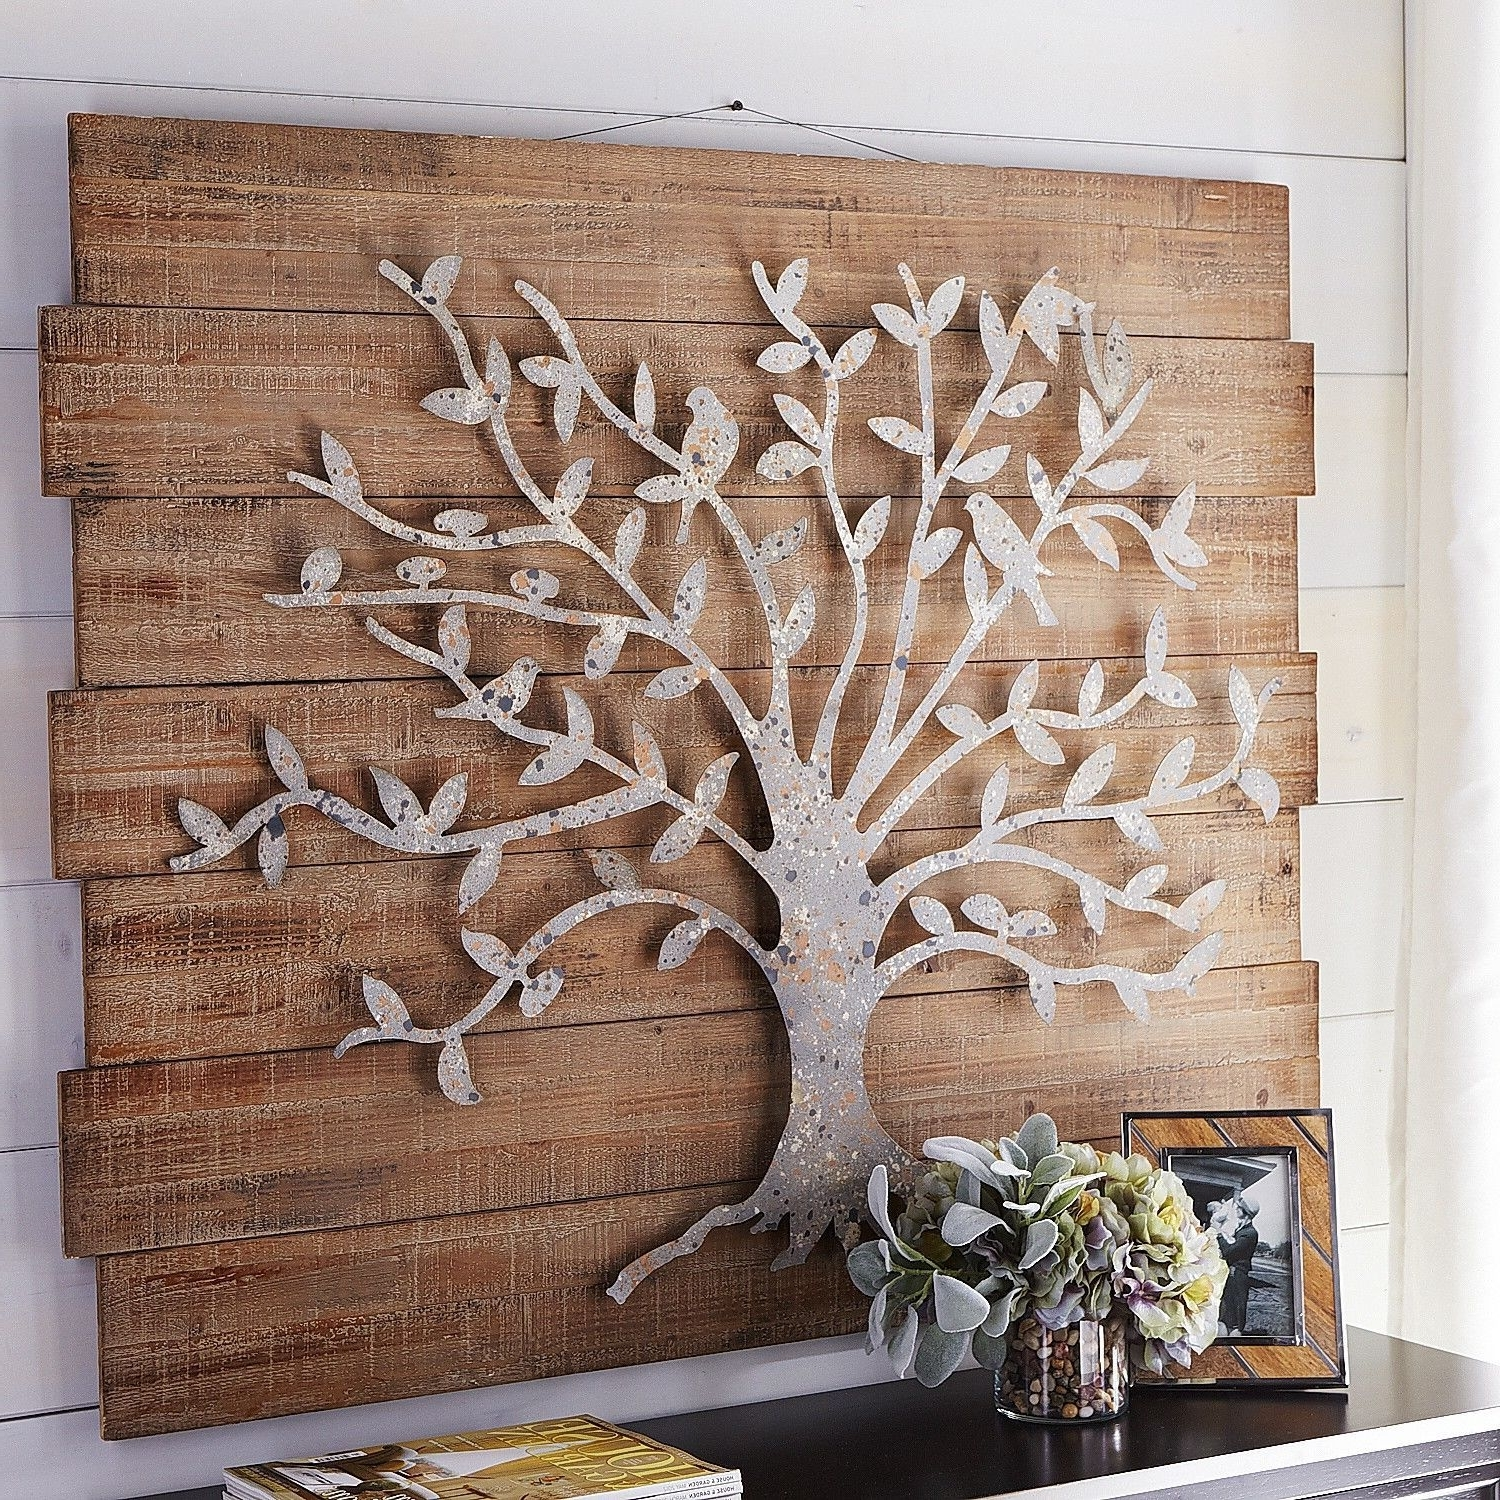 Newest Unique Metal Tree With Birds Wall Art Good Ideas Large Metal Tree Intended For Large Metal Wall Art (View 10 of 15)